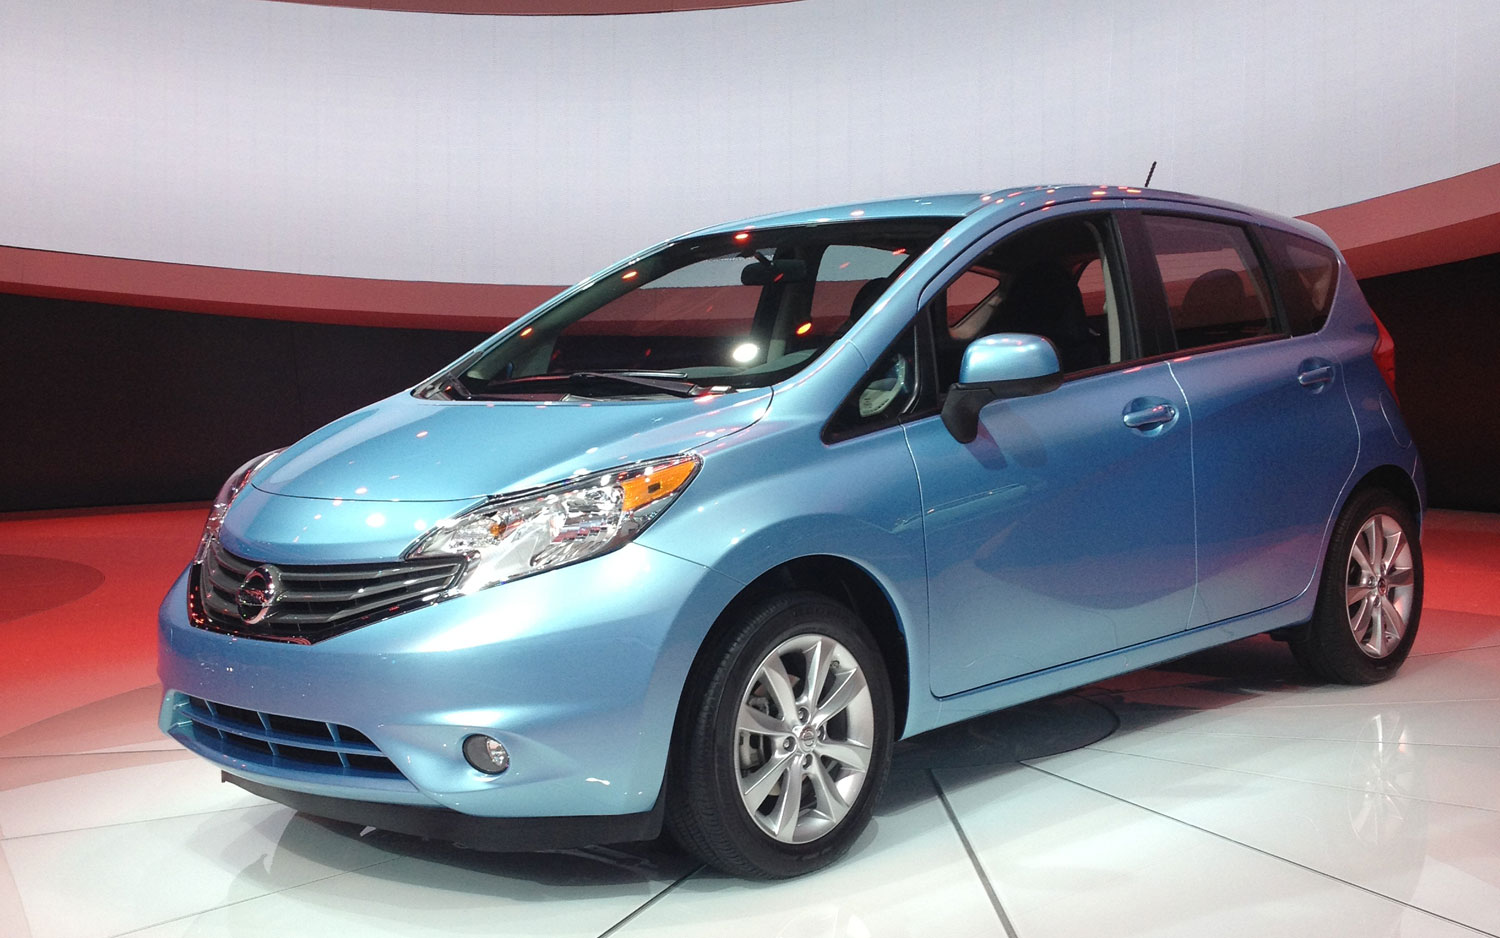 The most expensive states to buy and insure the Nissan Versa